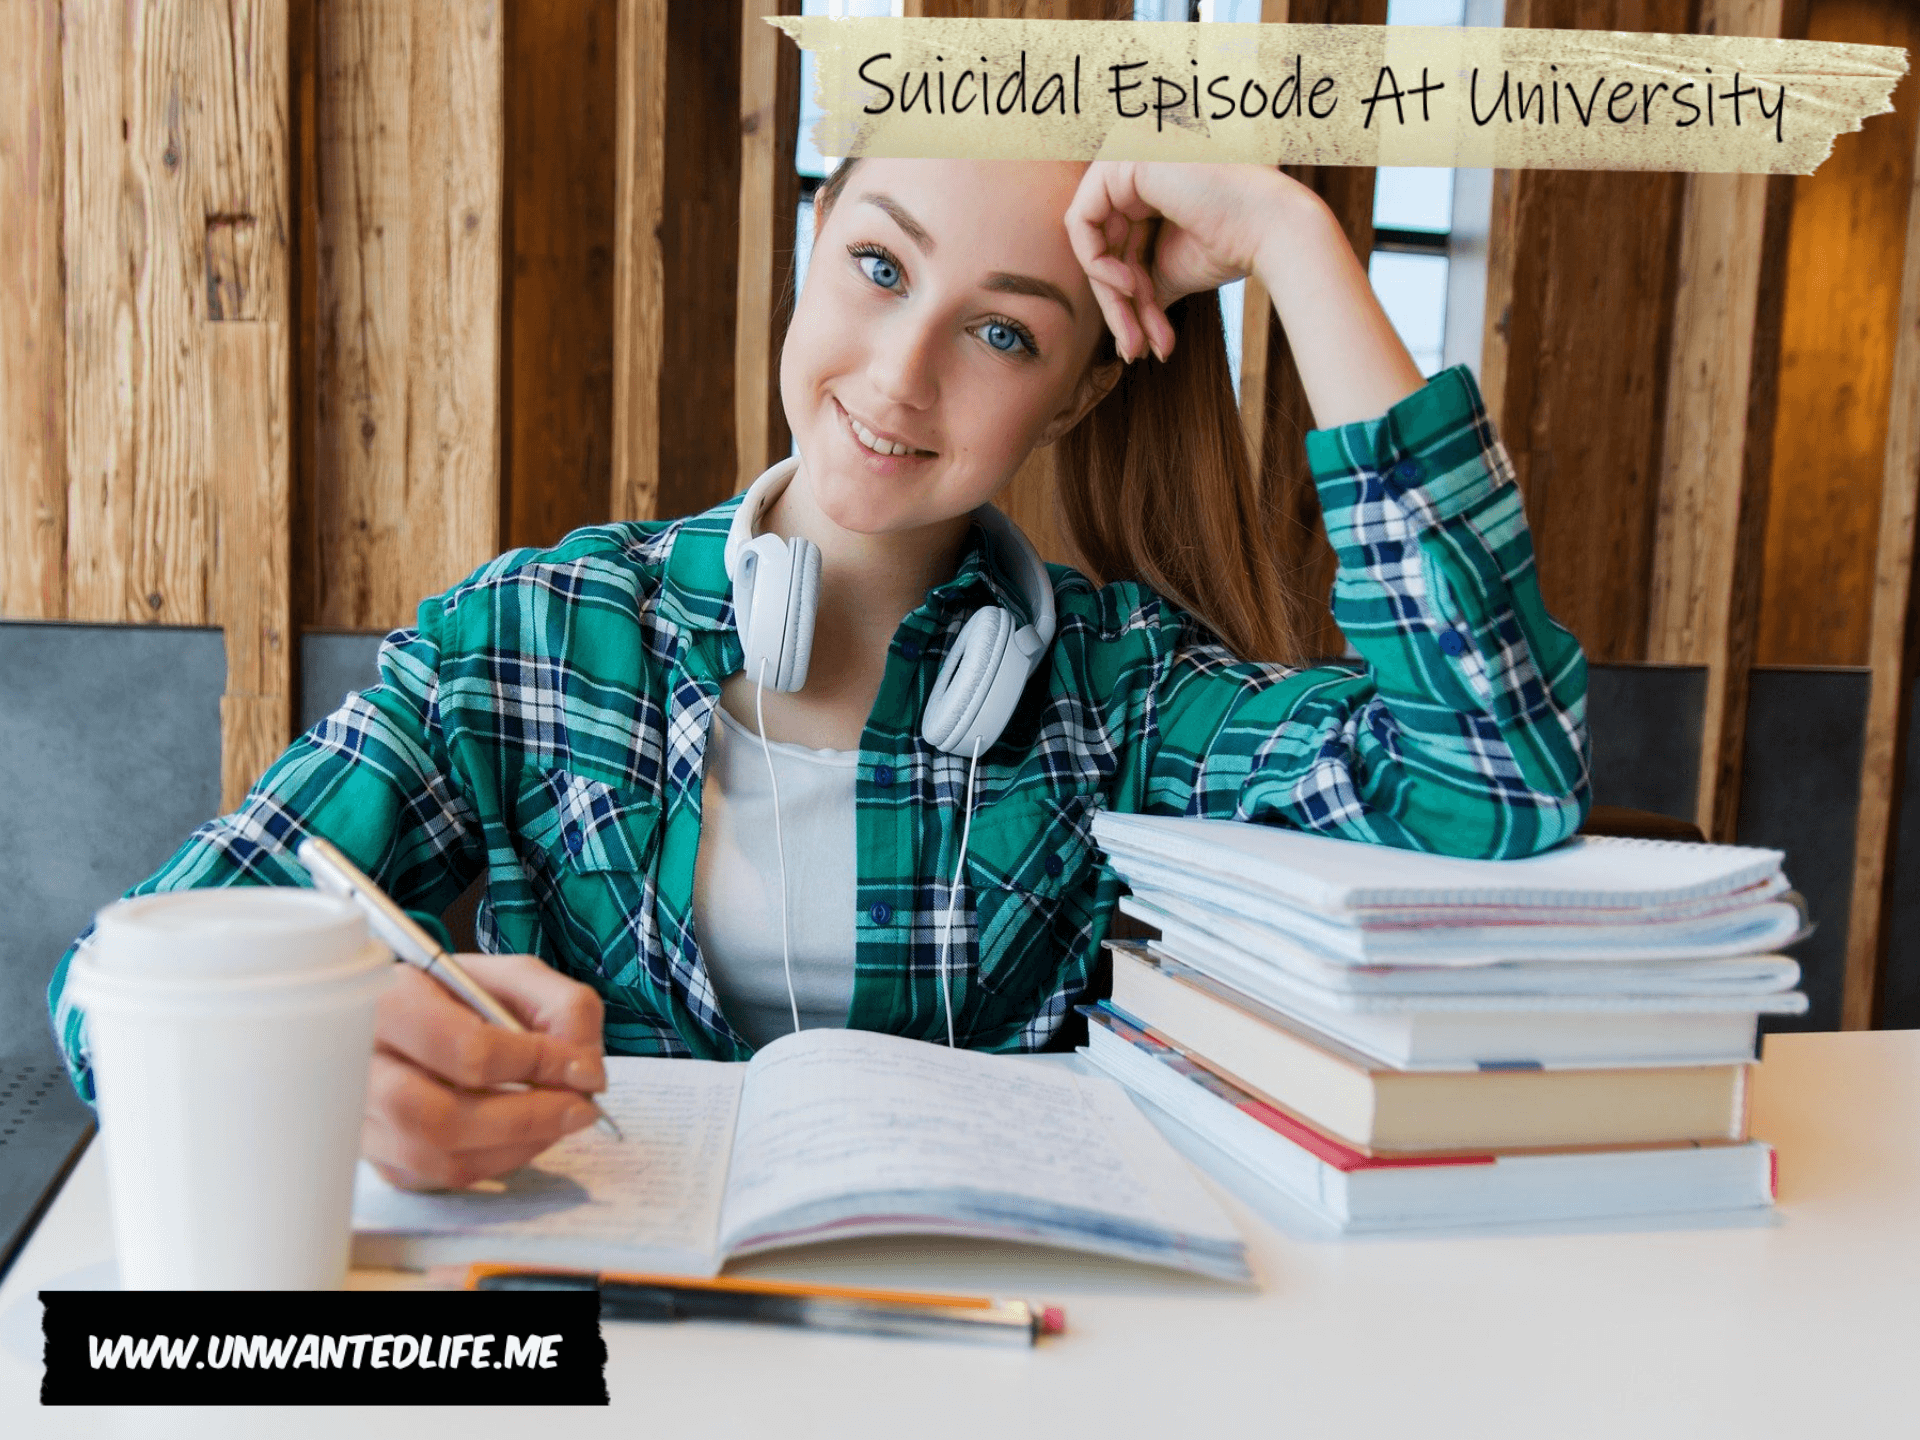 A white female university student sitting with a pile of books and writing in a notebook to represent the topic of the article - Suicidal Episode At University | Mental Health and Wellbeing